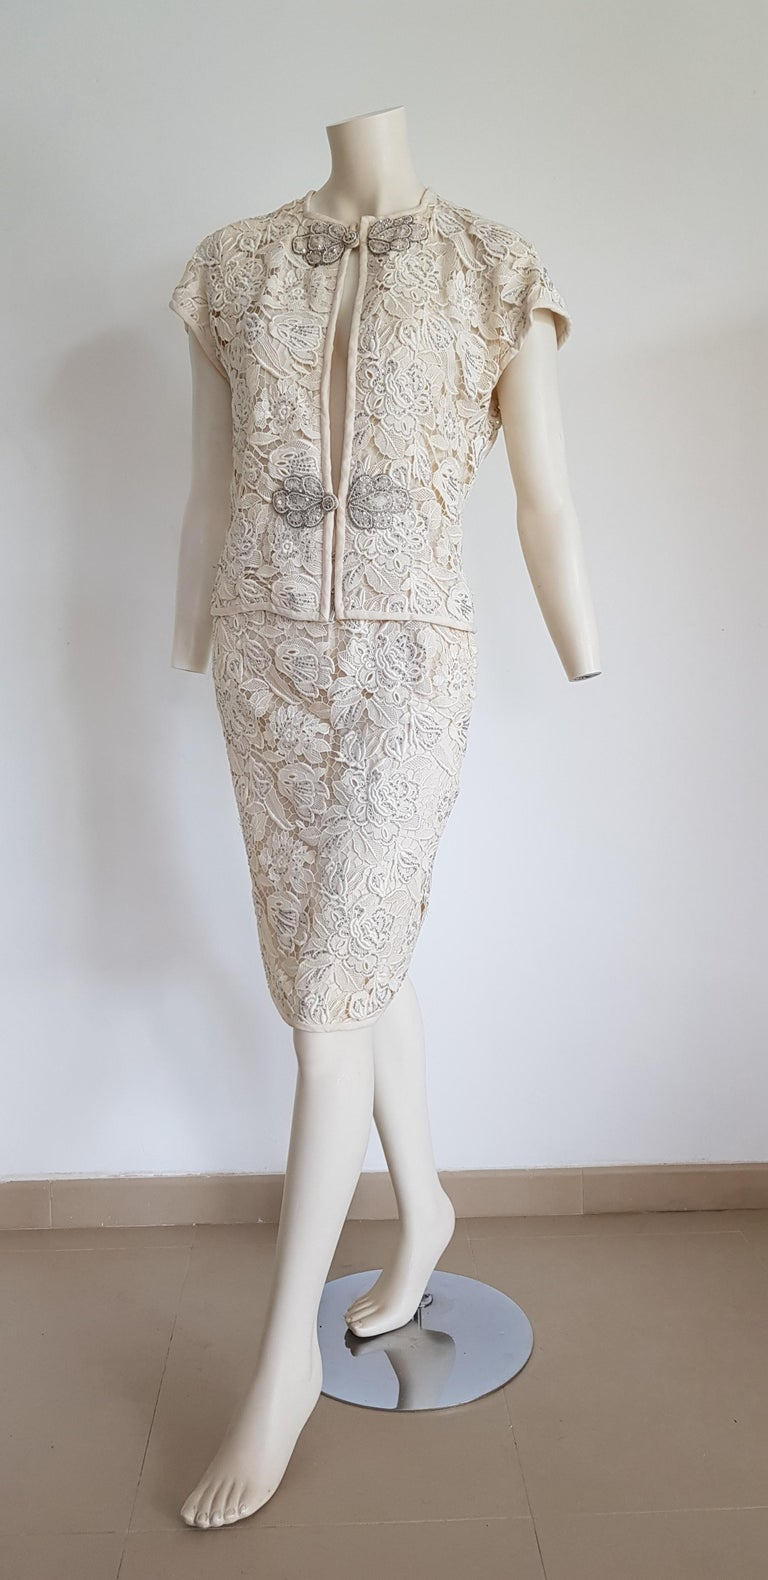 VALENTINO Haute Couture Swarovski Diamonds Embroidered Lace Beige Suit - Unworn In New Condition For Sale In Somo (Santander), ES